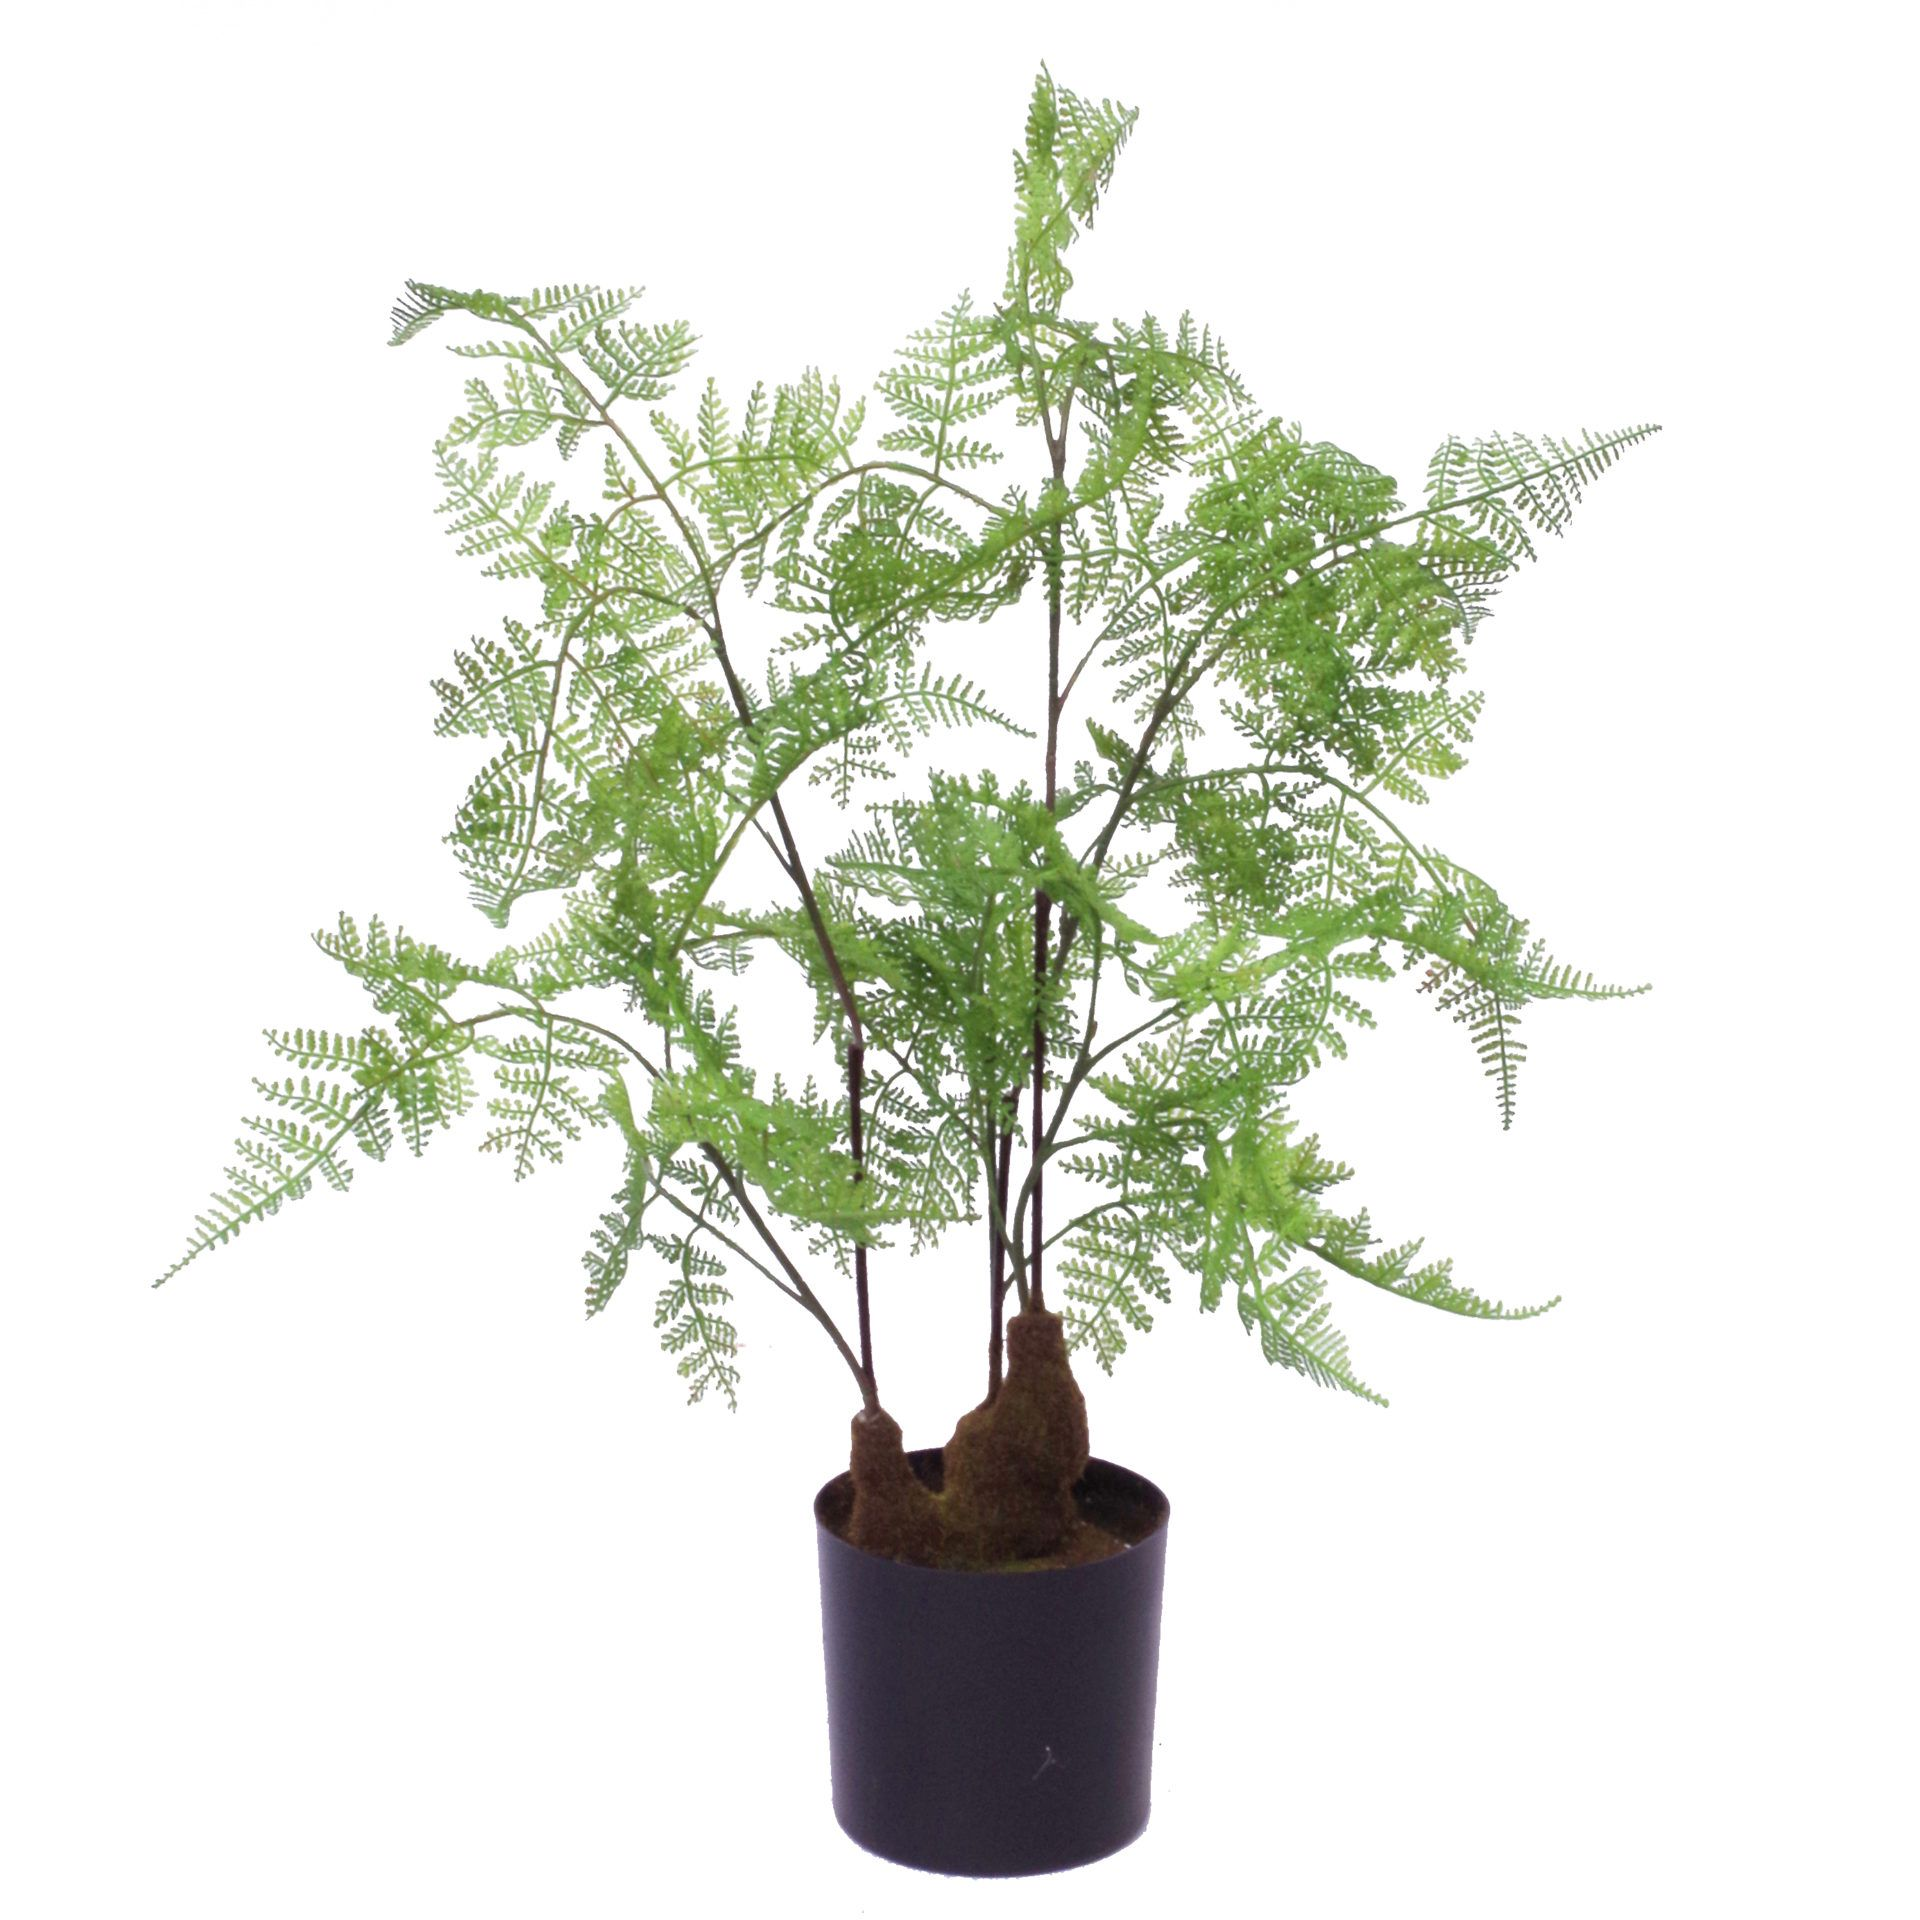 Price: £34.99 60cm Artificial Natural Moss Base Fern Foliage Plant Leaf Artificial Plants This artificial moss base natural fern plant measures 60cm tall x 40cm x 40cm when arranged as we have it in our pictures. Comes fully potted in a plastic pot, ready to display (planter measures 12cm wide x 11cm tall). Fully wired stems ready to be arranged to fit your space perfectly. Pot material: Plastic. Leaves: Plastic. #ArtificialPlants